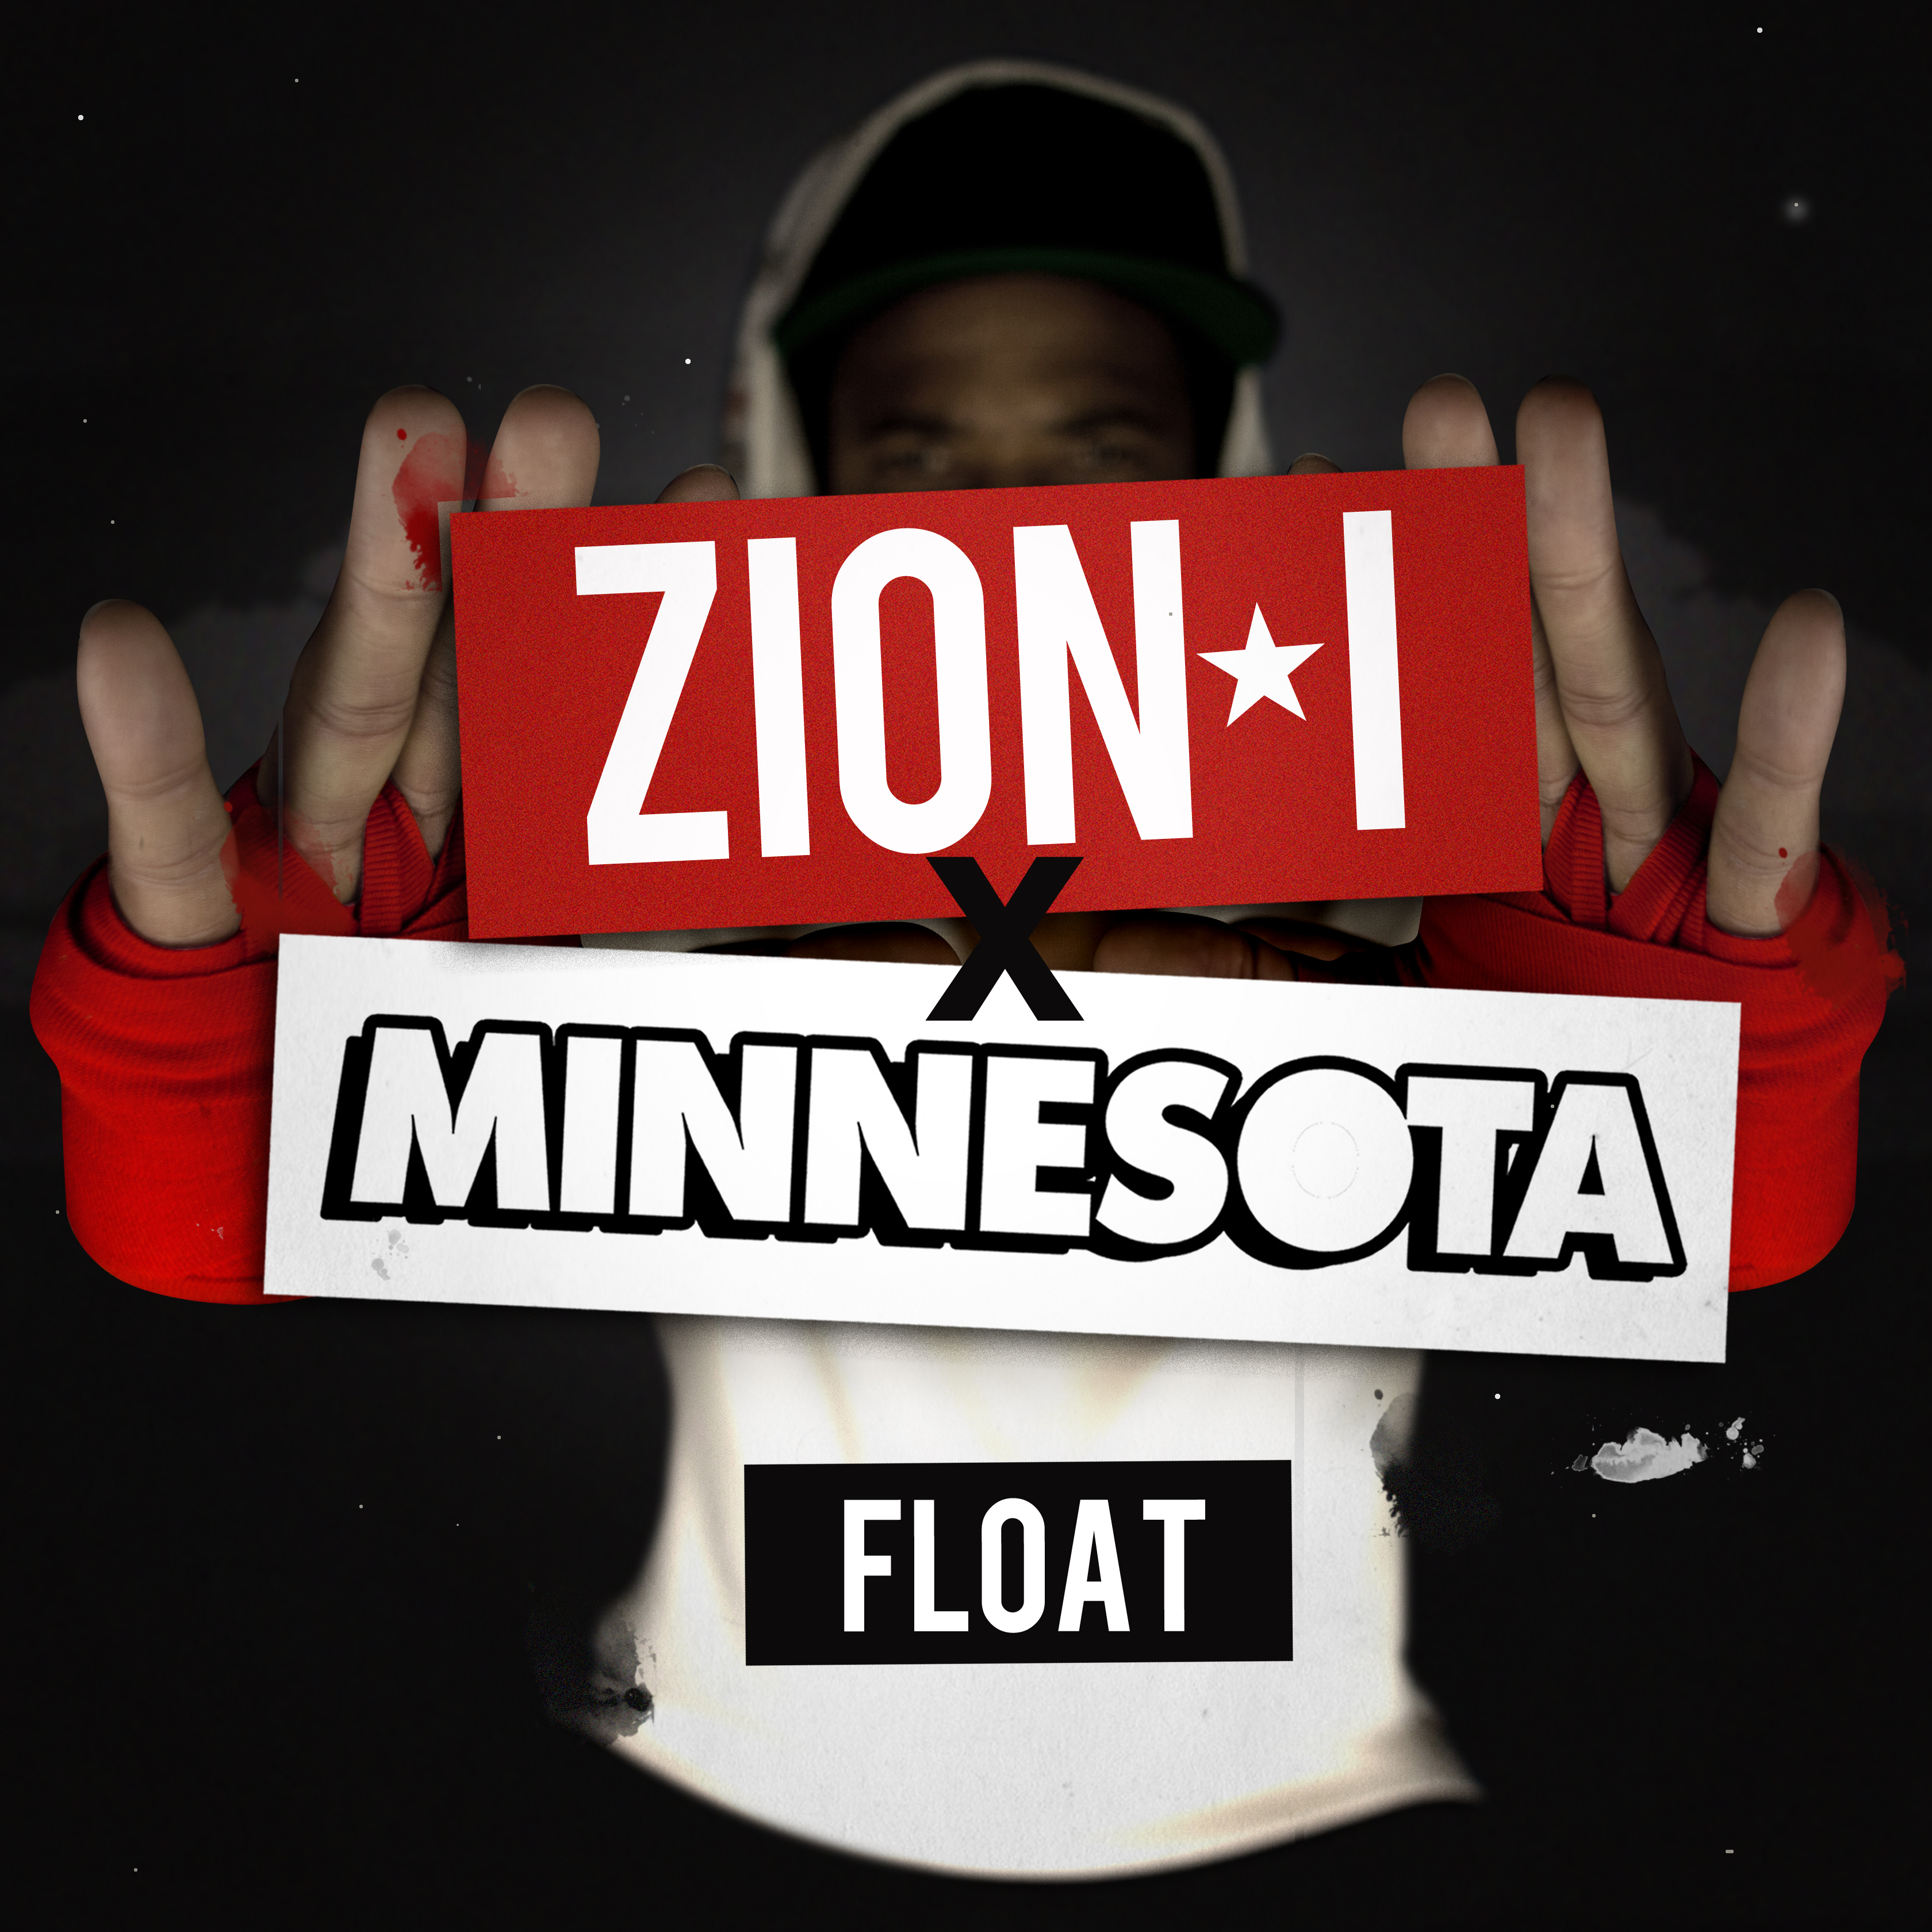 Zion I X Minnesota - Float [mp3] | Shadow Boxing Tour 2012